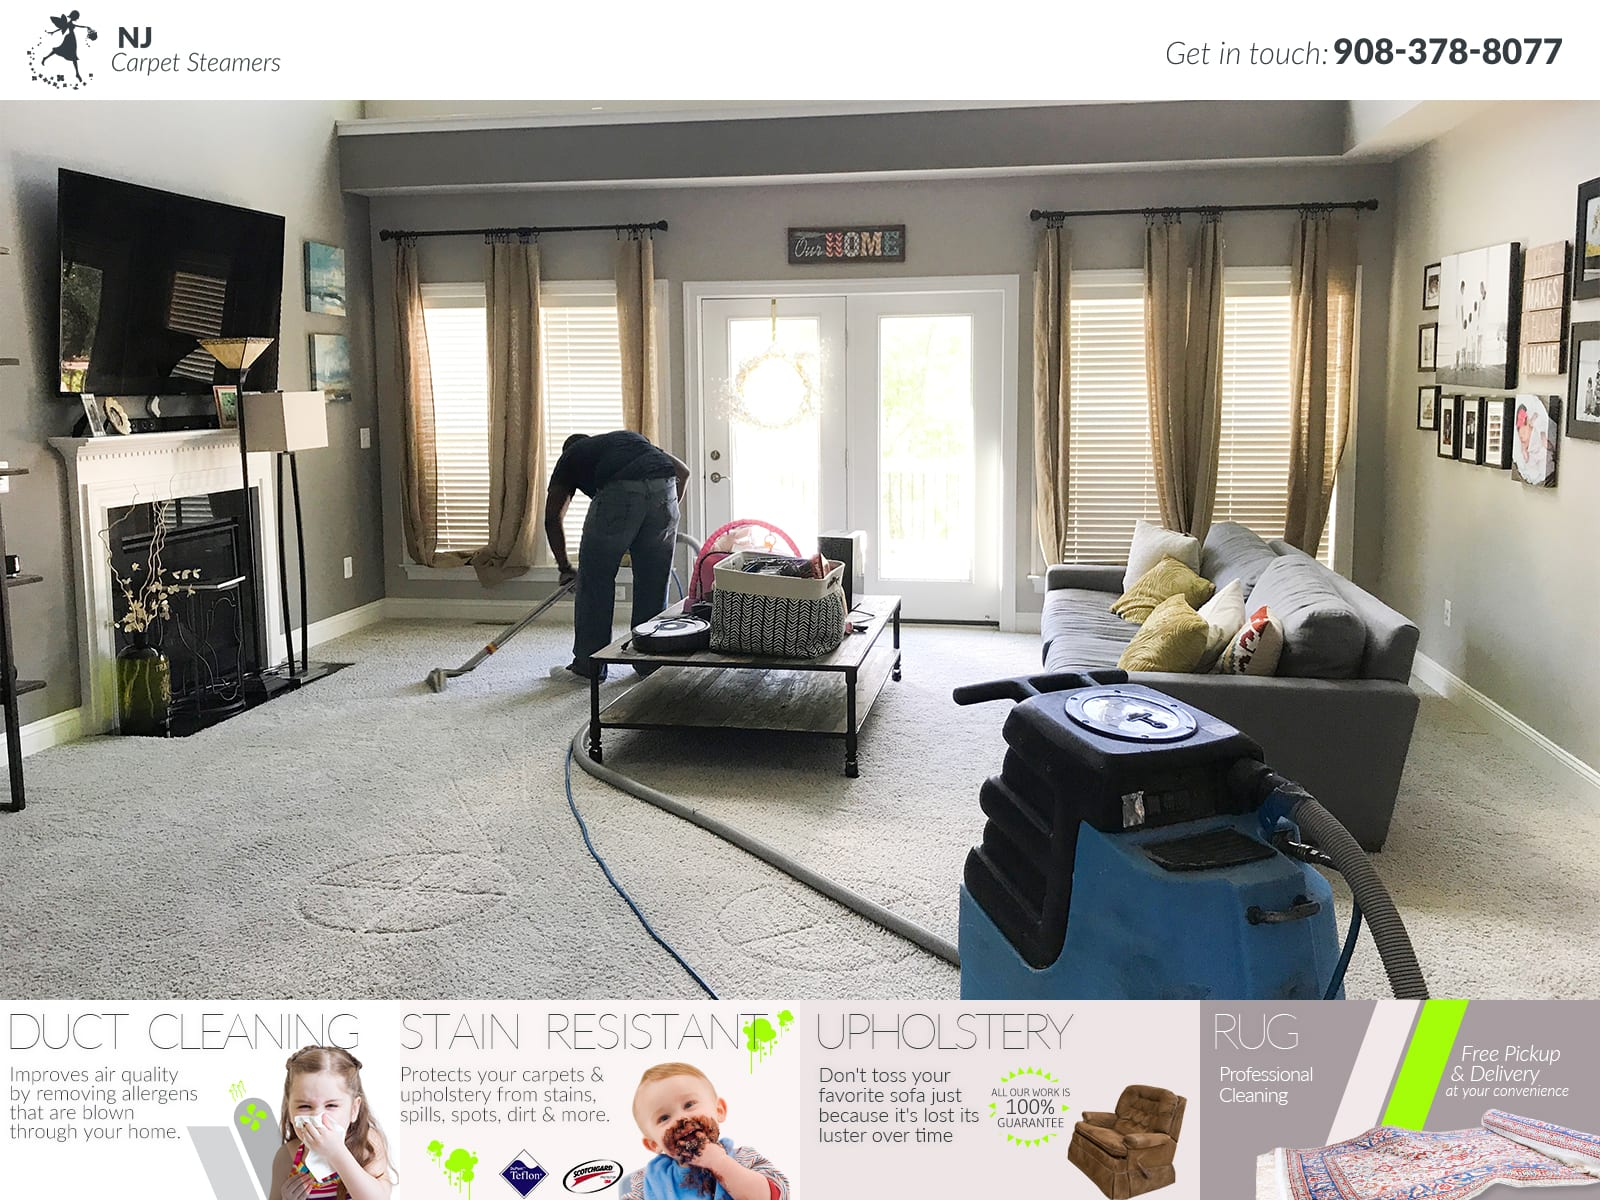 completeHomeCleaningServices.jpg